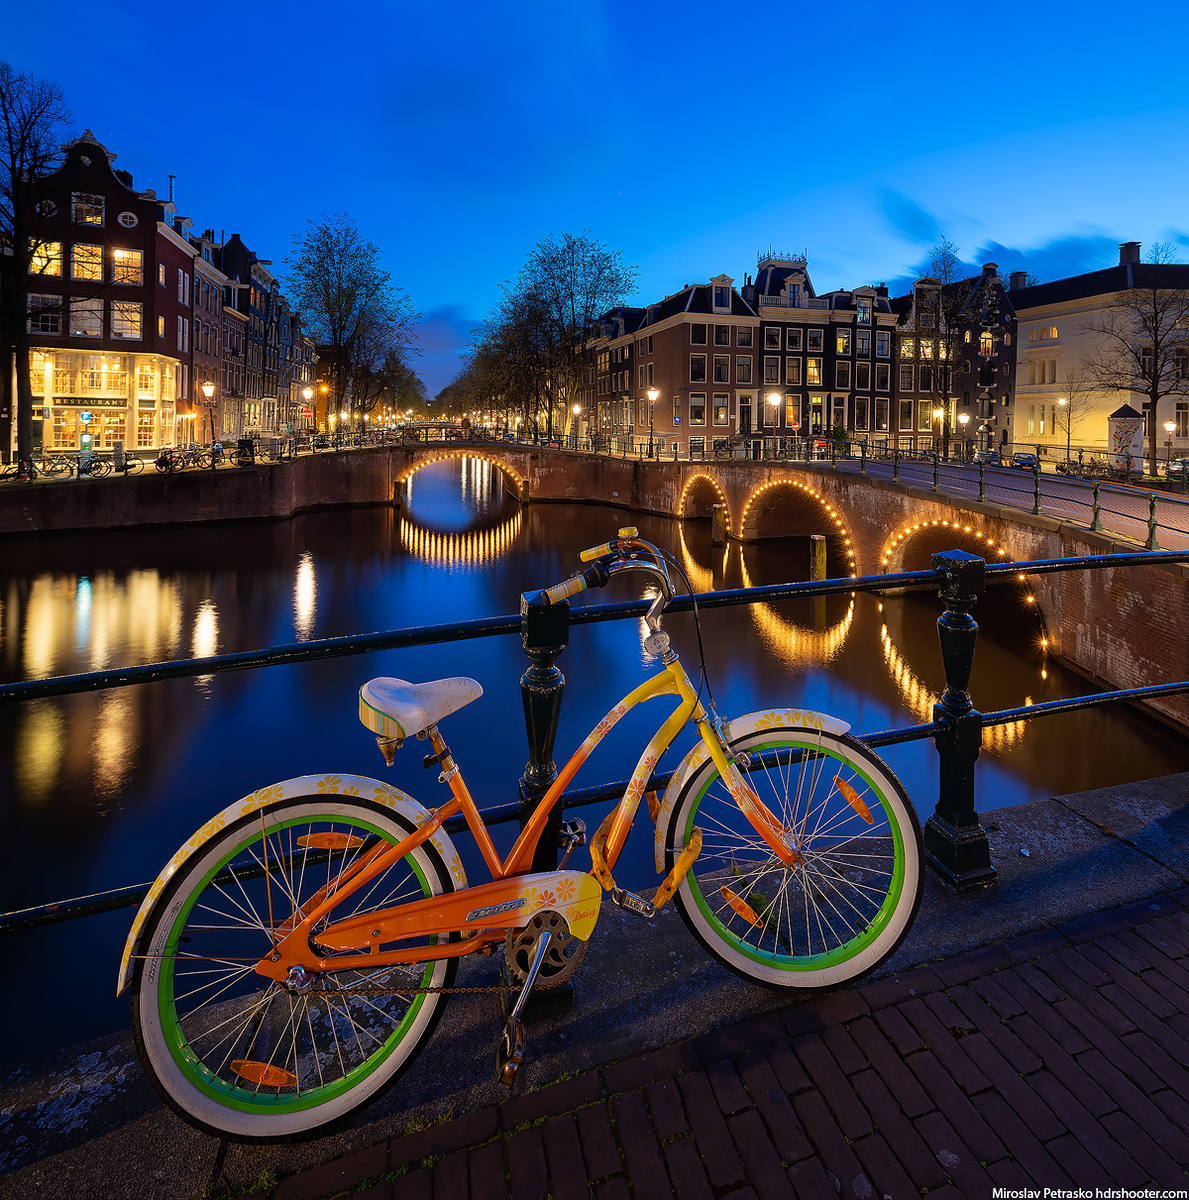 Colorful bicycle in Amsterdam, Netherlands